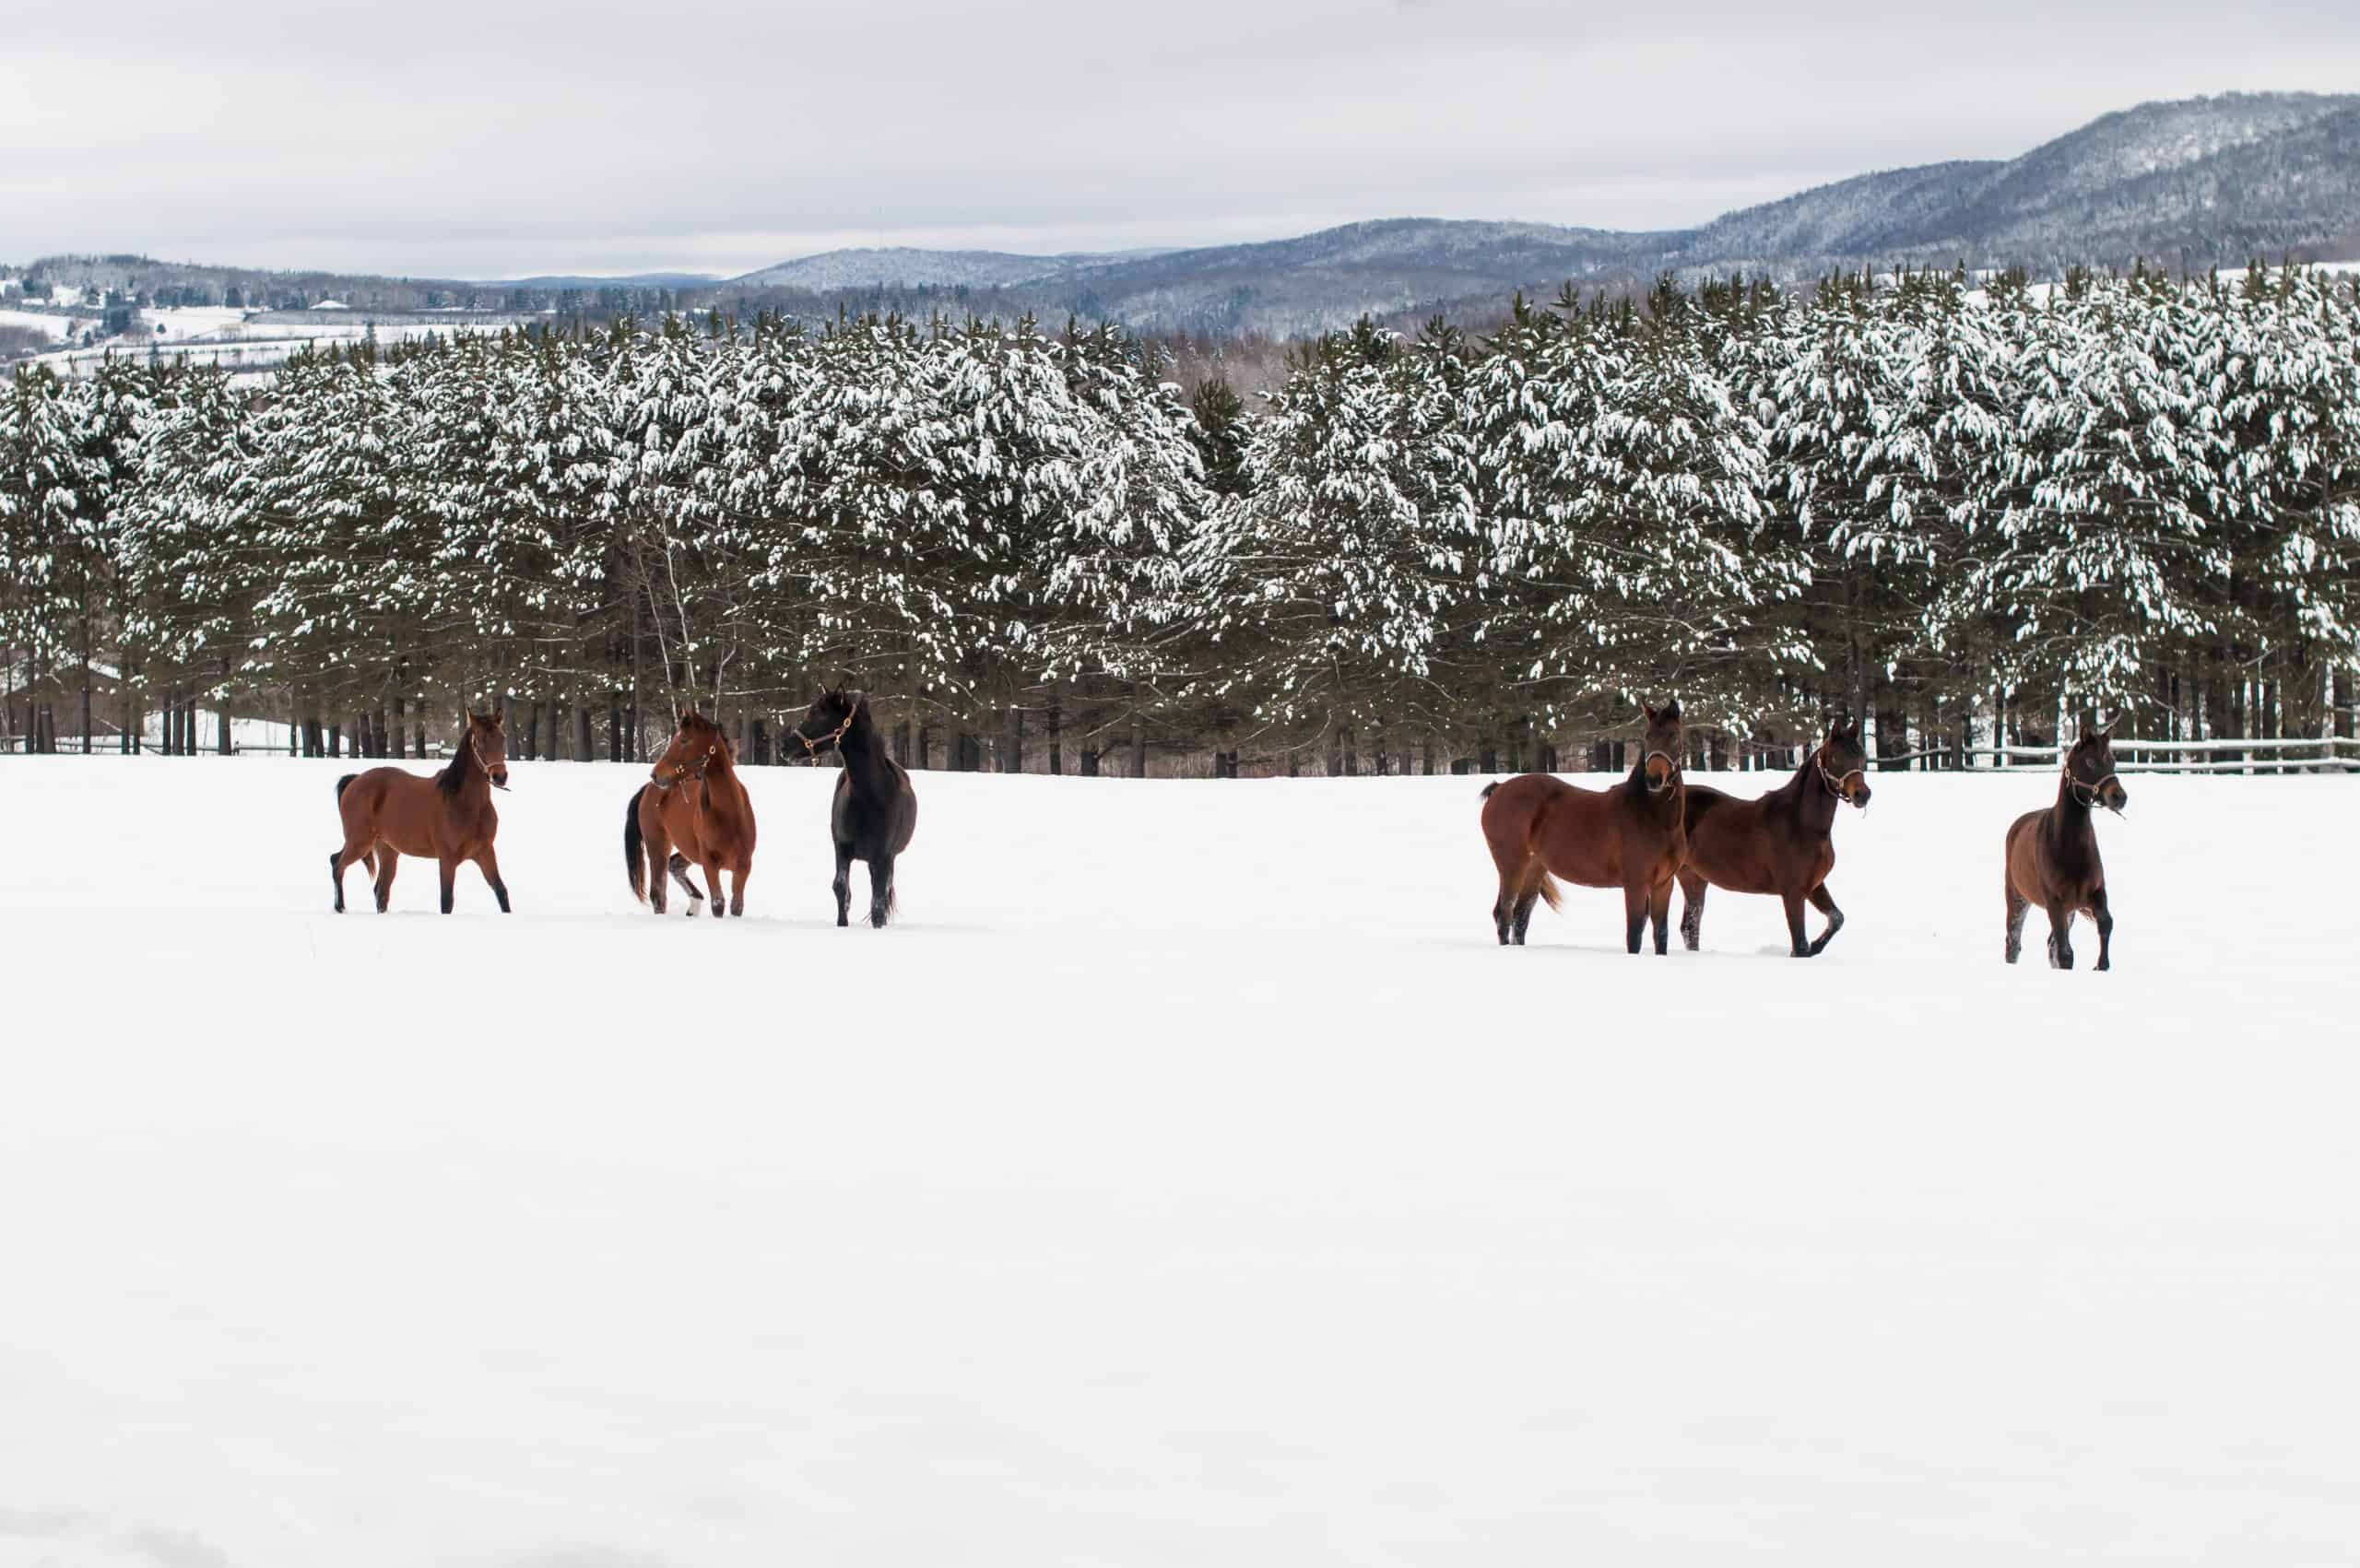 Group of Morgan horses in winter. Tall pine trees in the background and mountain range. Brown and black horses standing near a fence on a country farm. Bright white snow on the ground and cloudy skies. Christmas season, holidays, equine photography. Horizontal orientation.